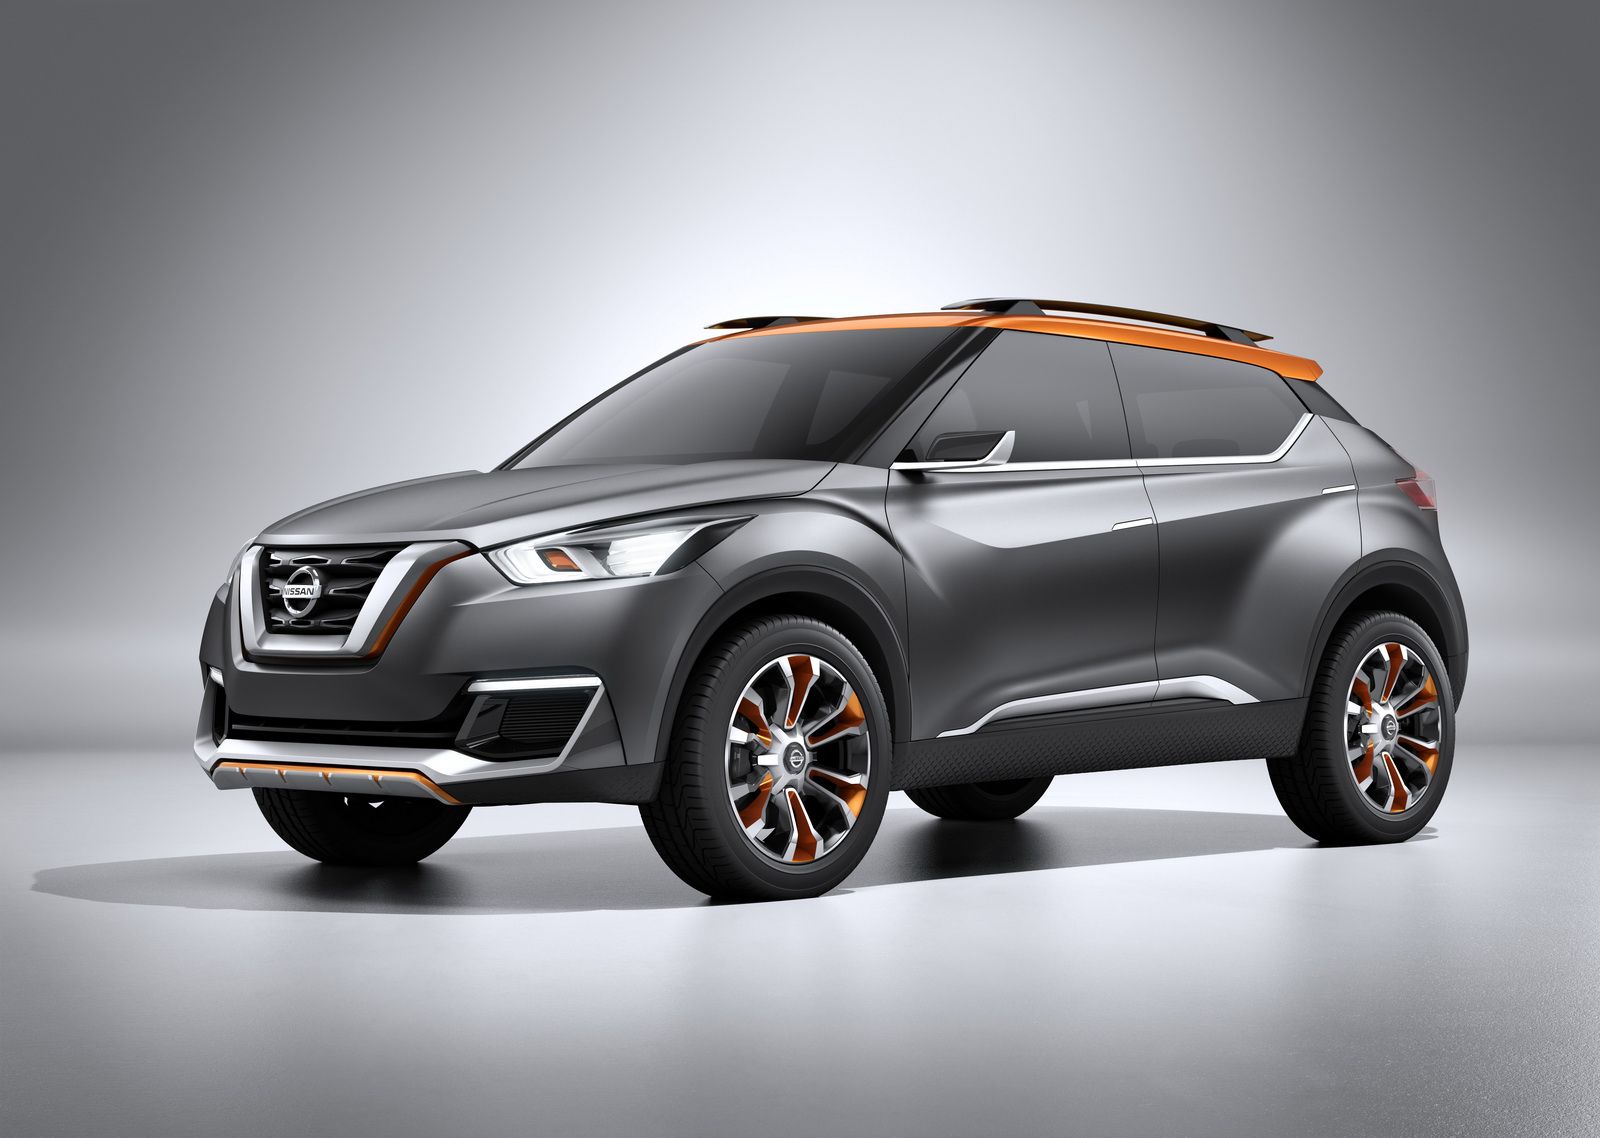 Nissan Kicks SUV concept photo gallery | Car Gallery | SUV/Crossovers | Autocar India